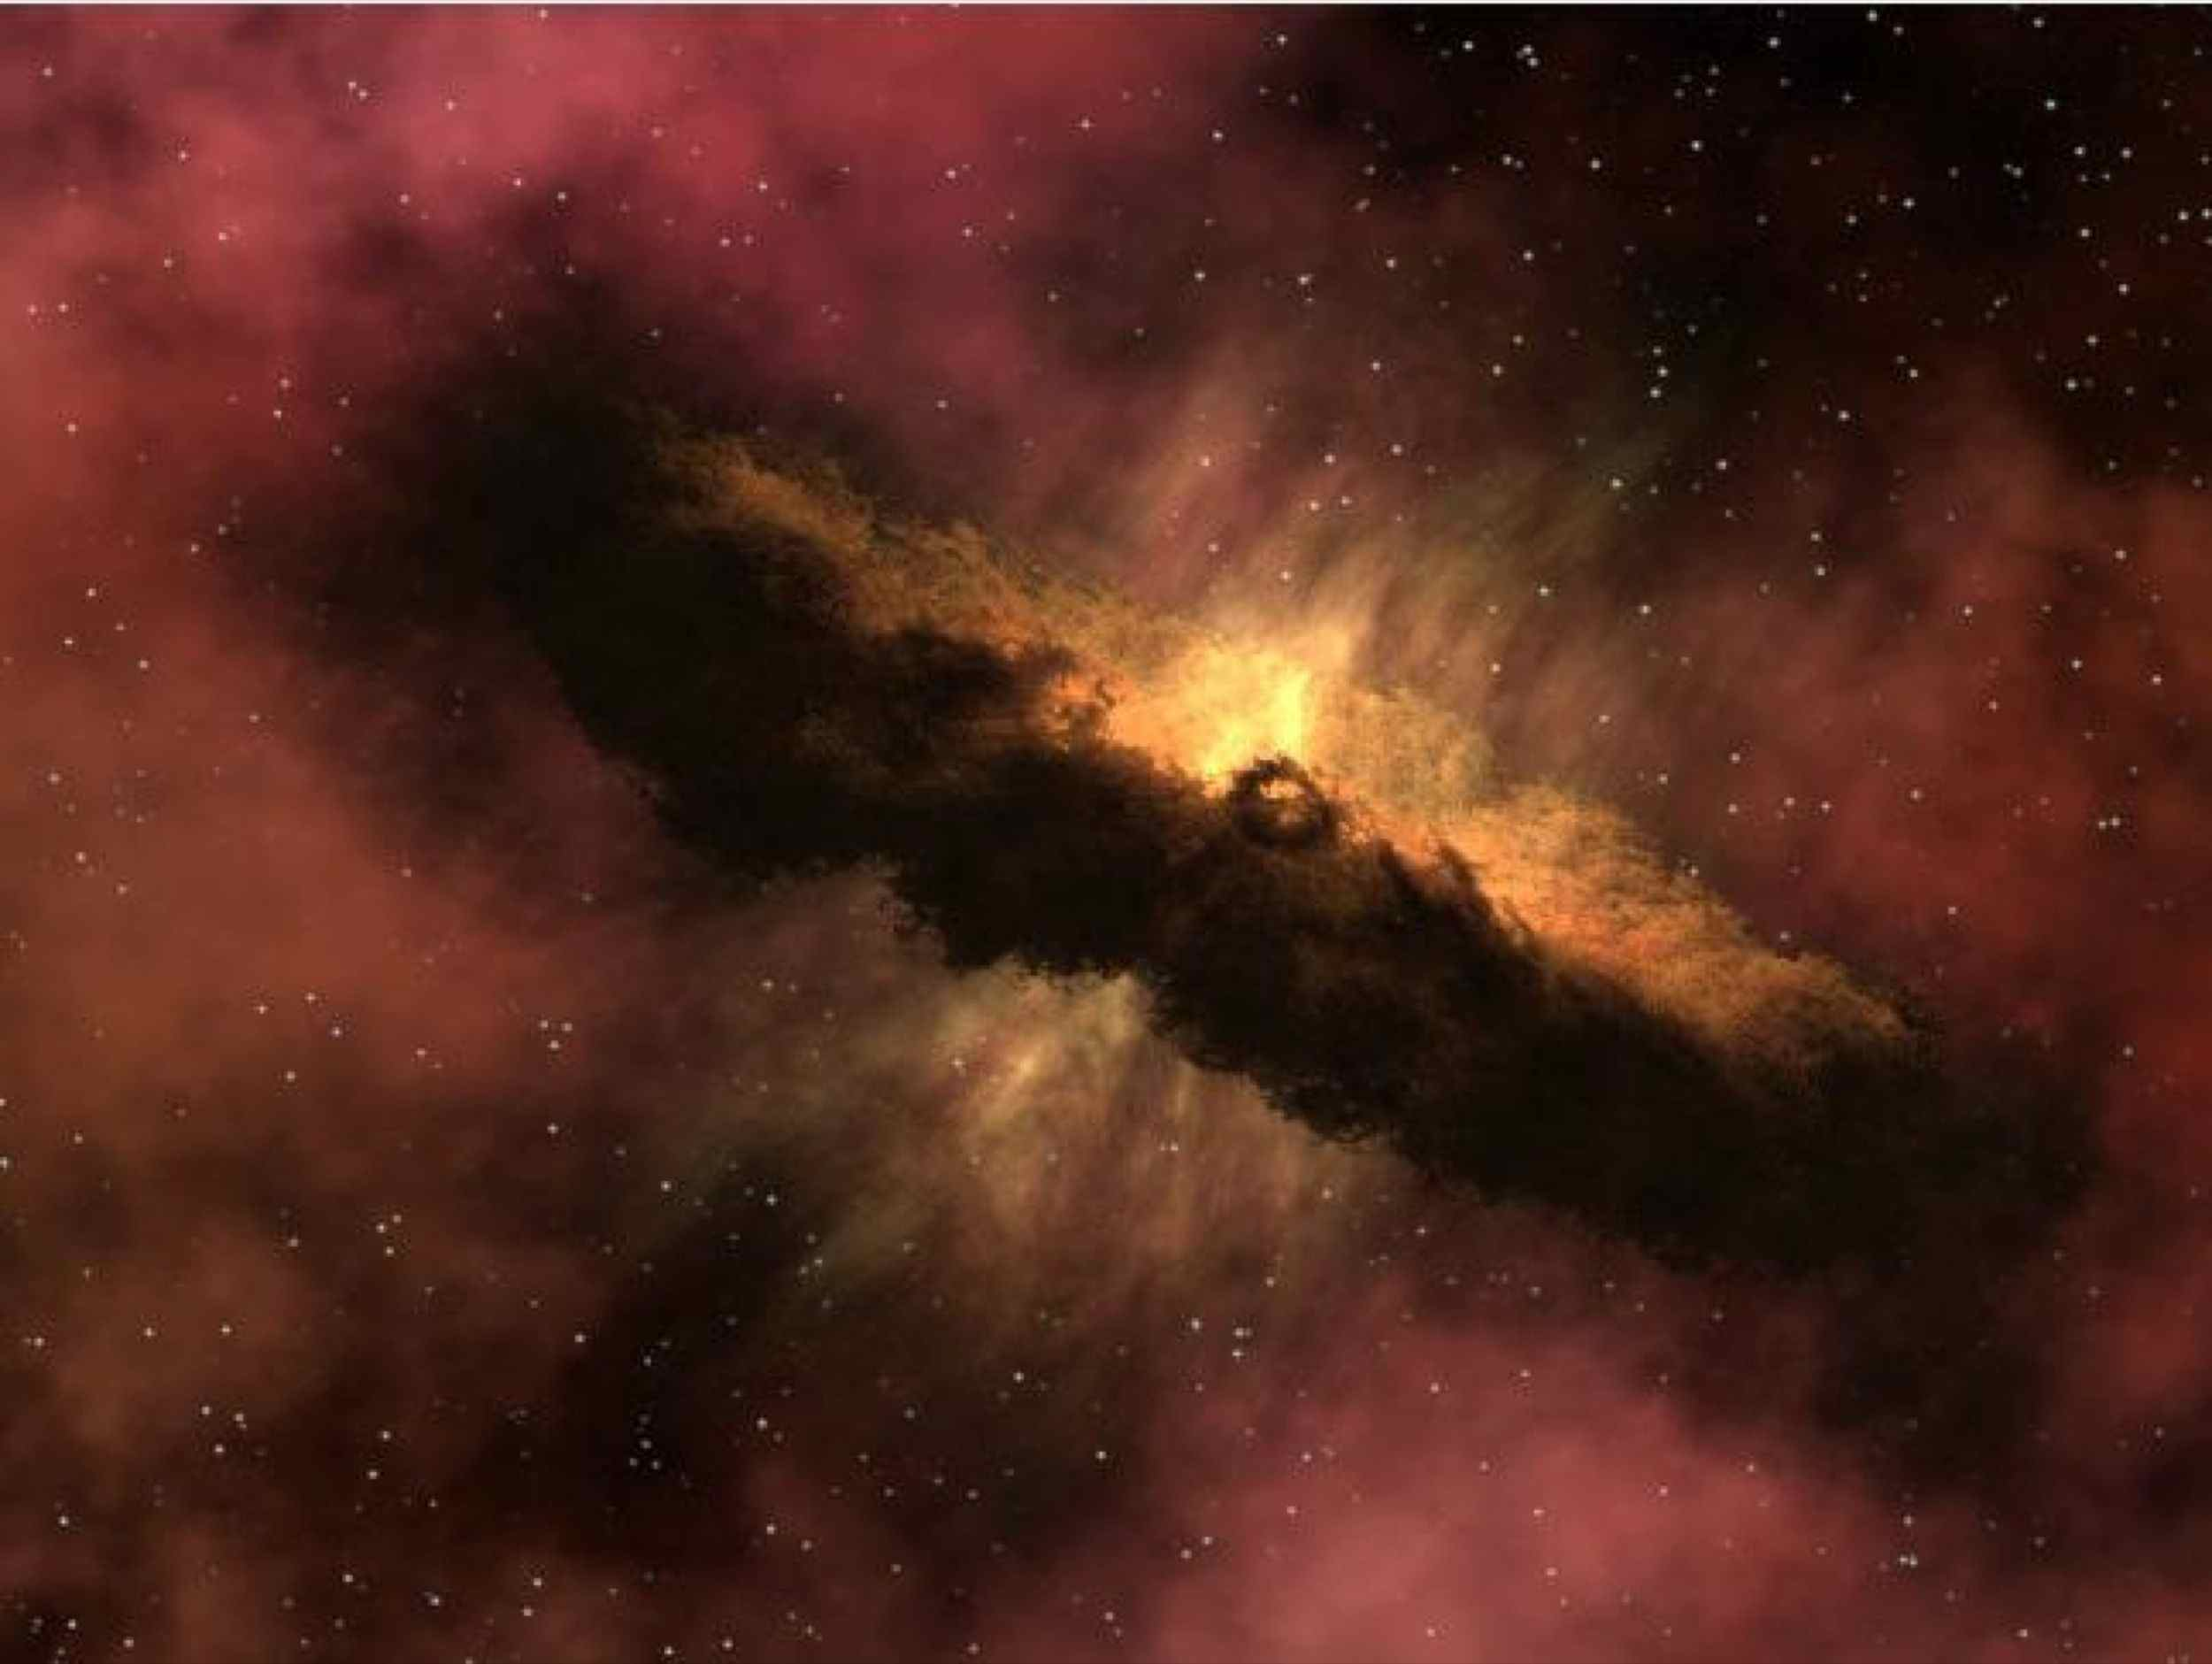 This artist's animation depicts one of the most widely accepted theories pertaining to the origin of comets. This image is courtesy of NASA's Spitzer Science Center at the California Institute of Technology, Pasadena, Calif.